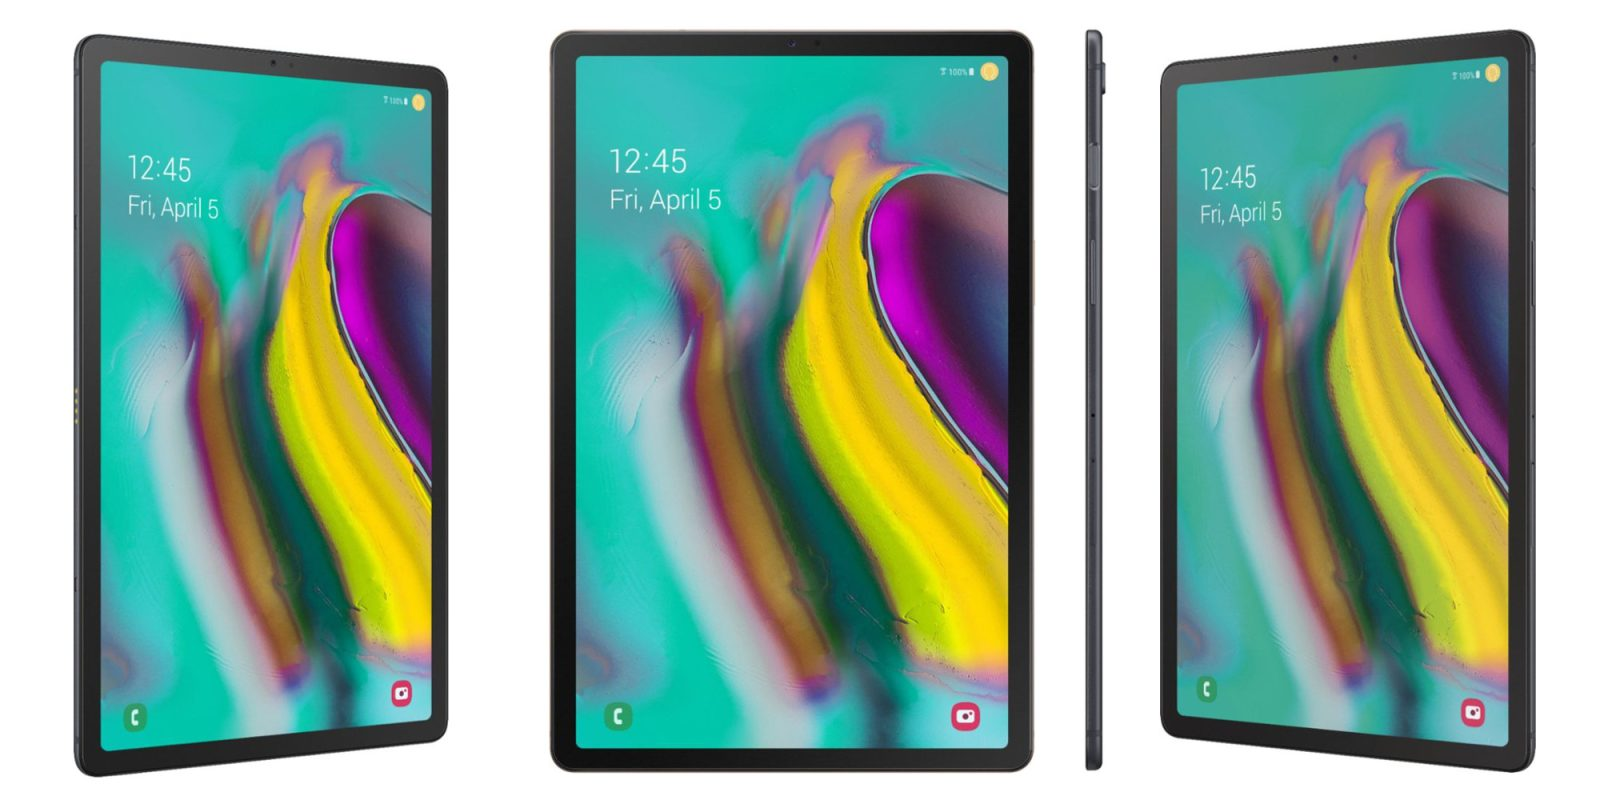 Samsung Galaxy Tab S5e 128GB is $50 off + much more - 9to5Google